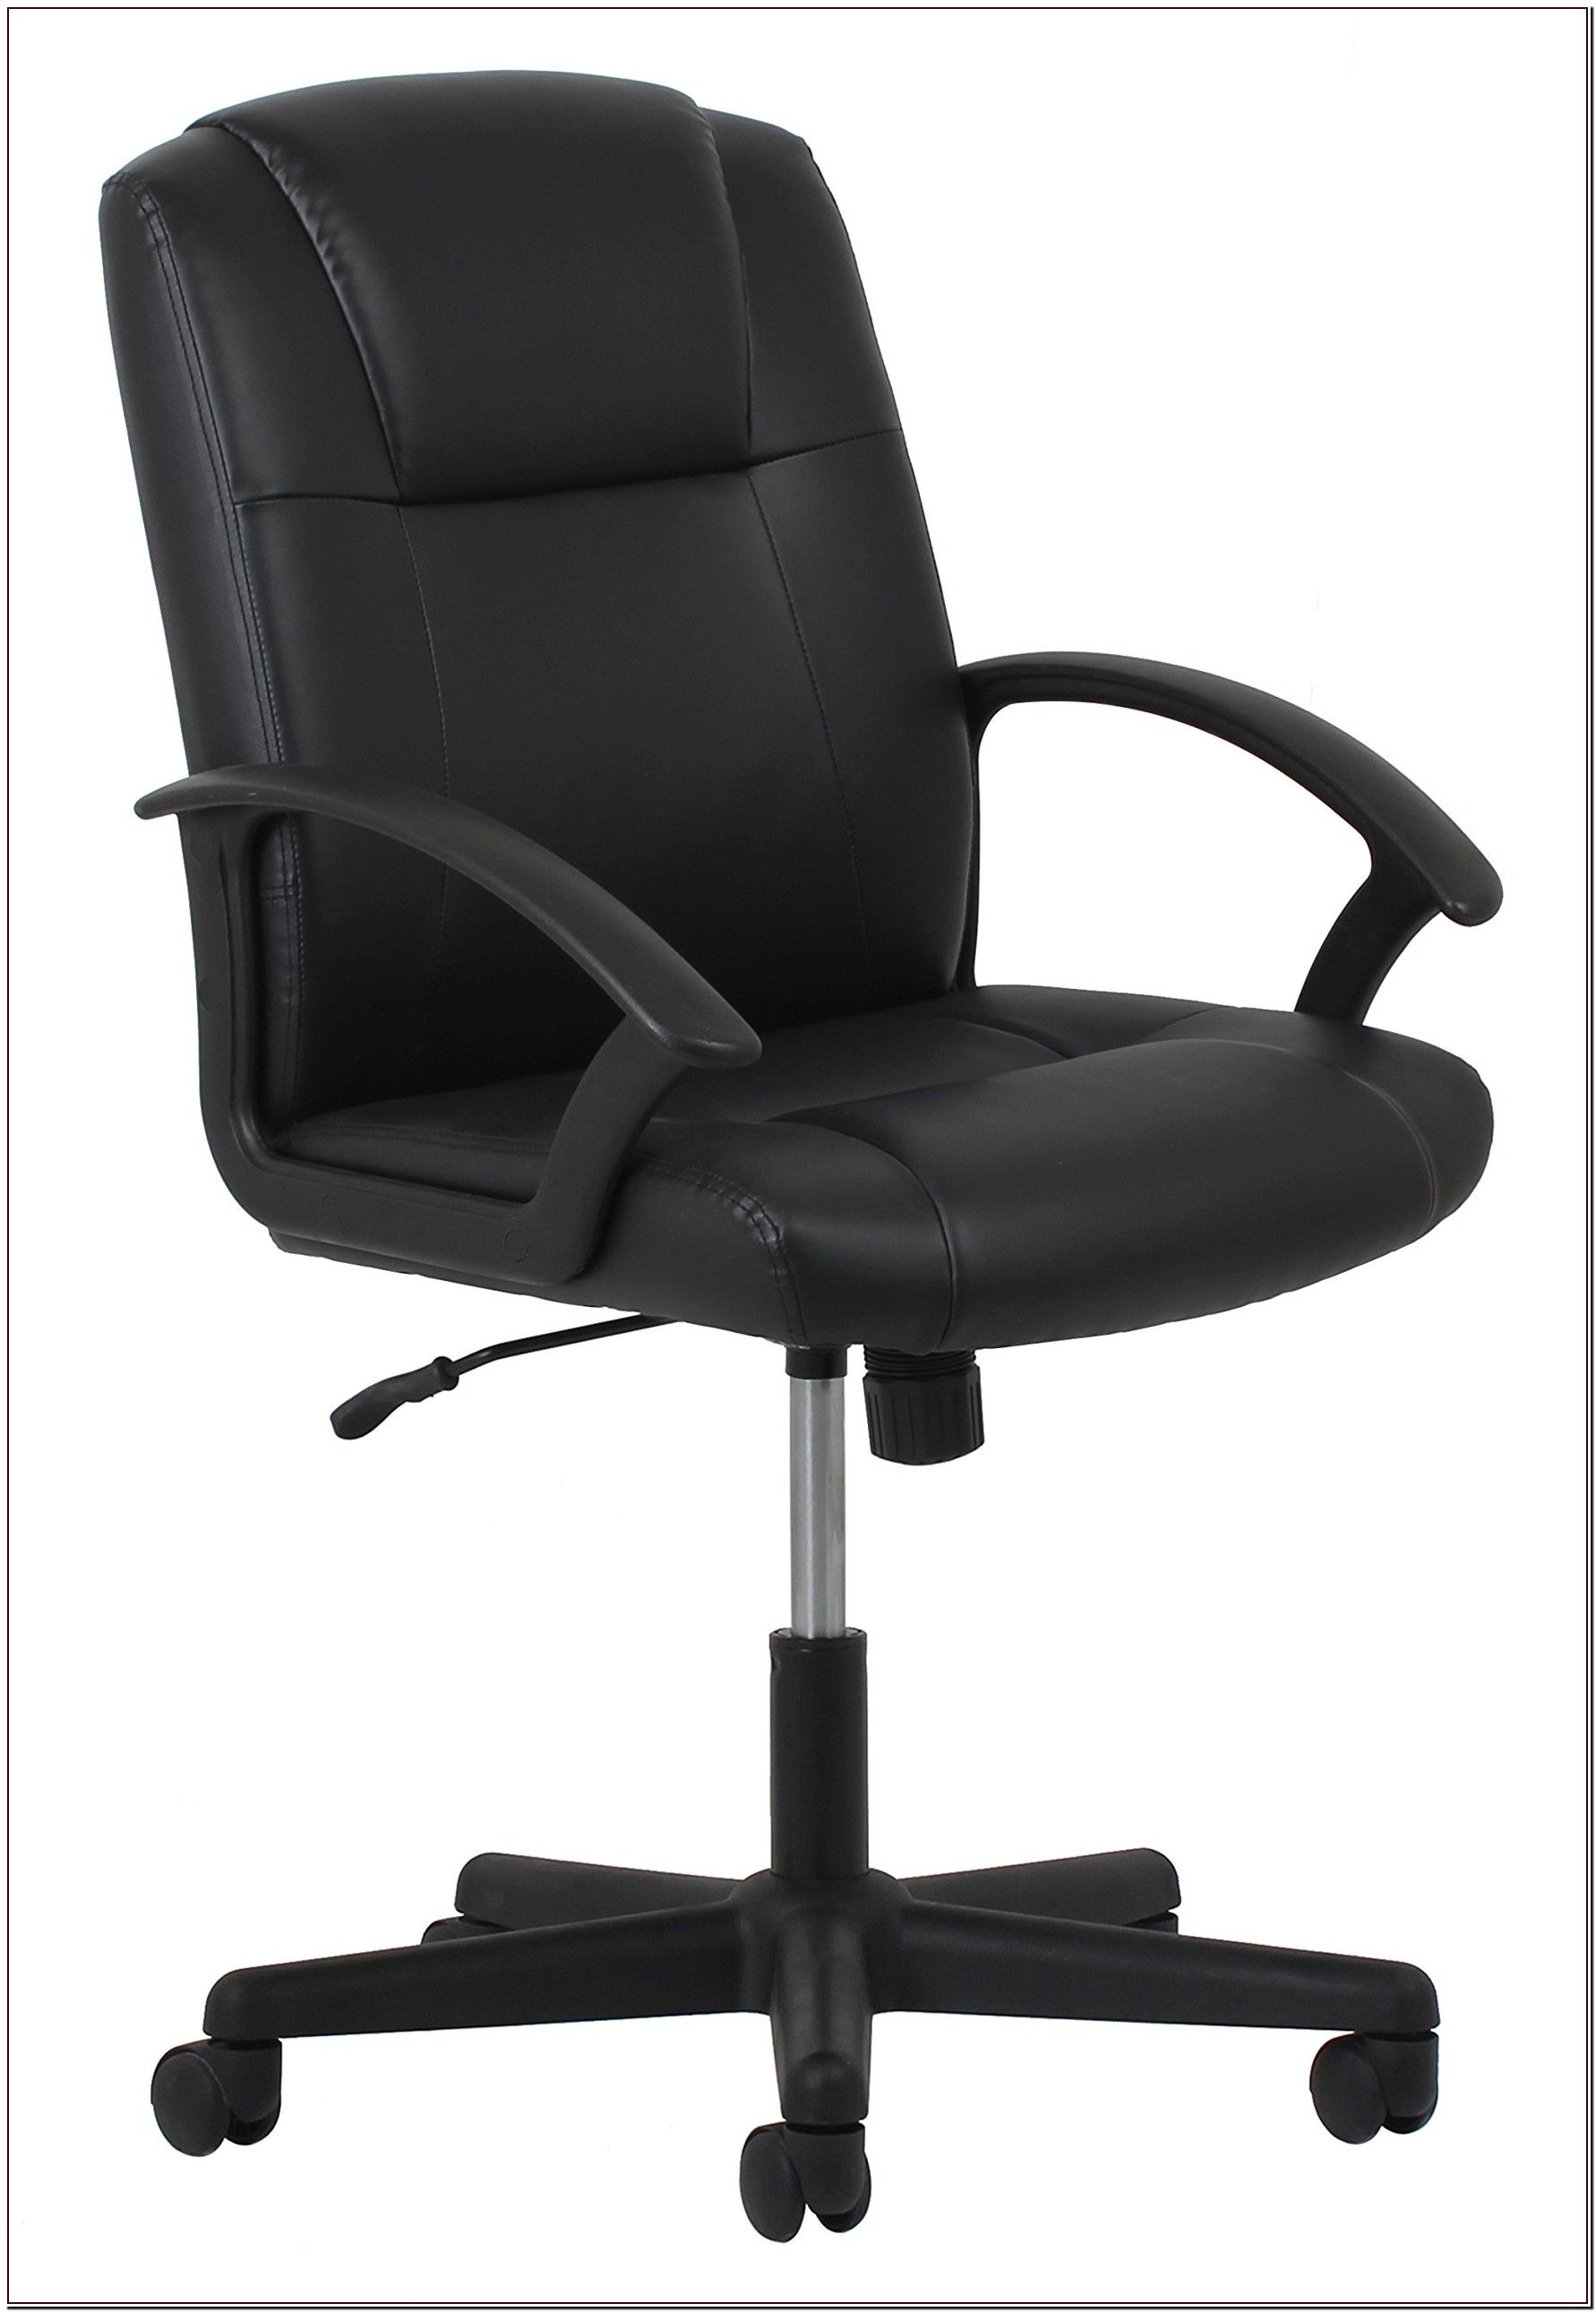 120 Reference Of Best Home Office Chair Reddit In 2020 Office Chair Home Office Chairs Best Office Chair